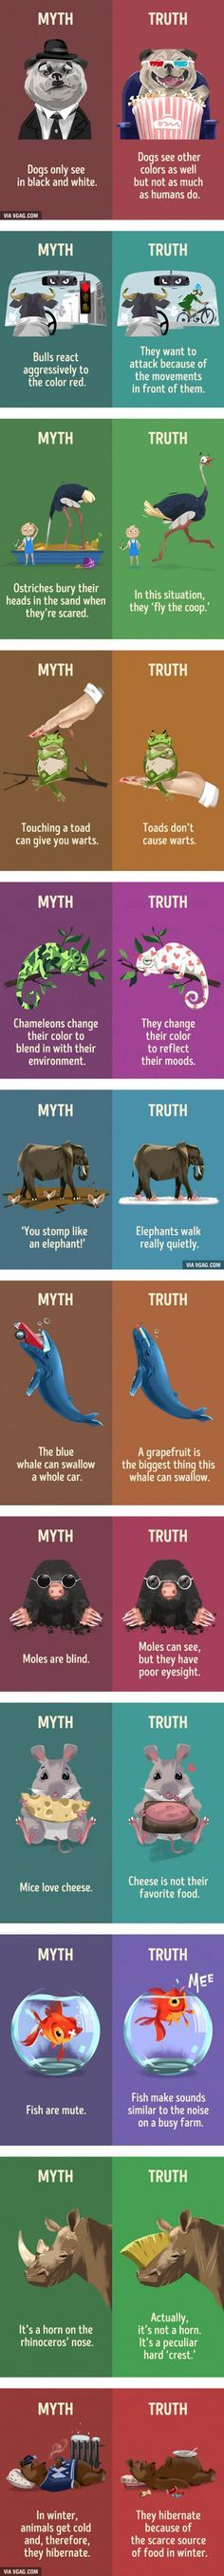 12 myths about animals that we still believe